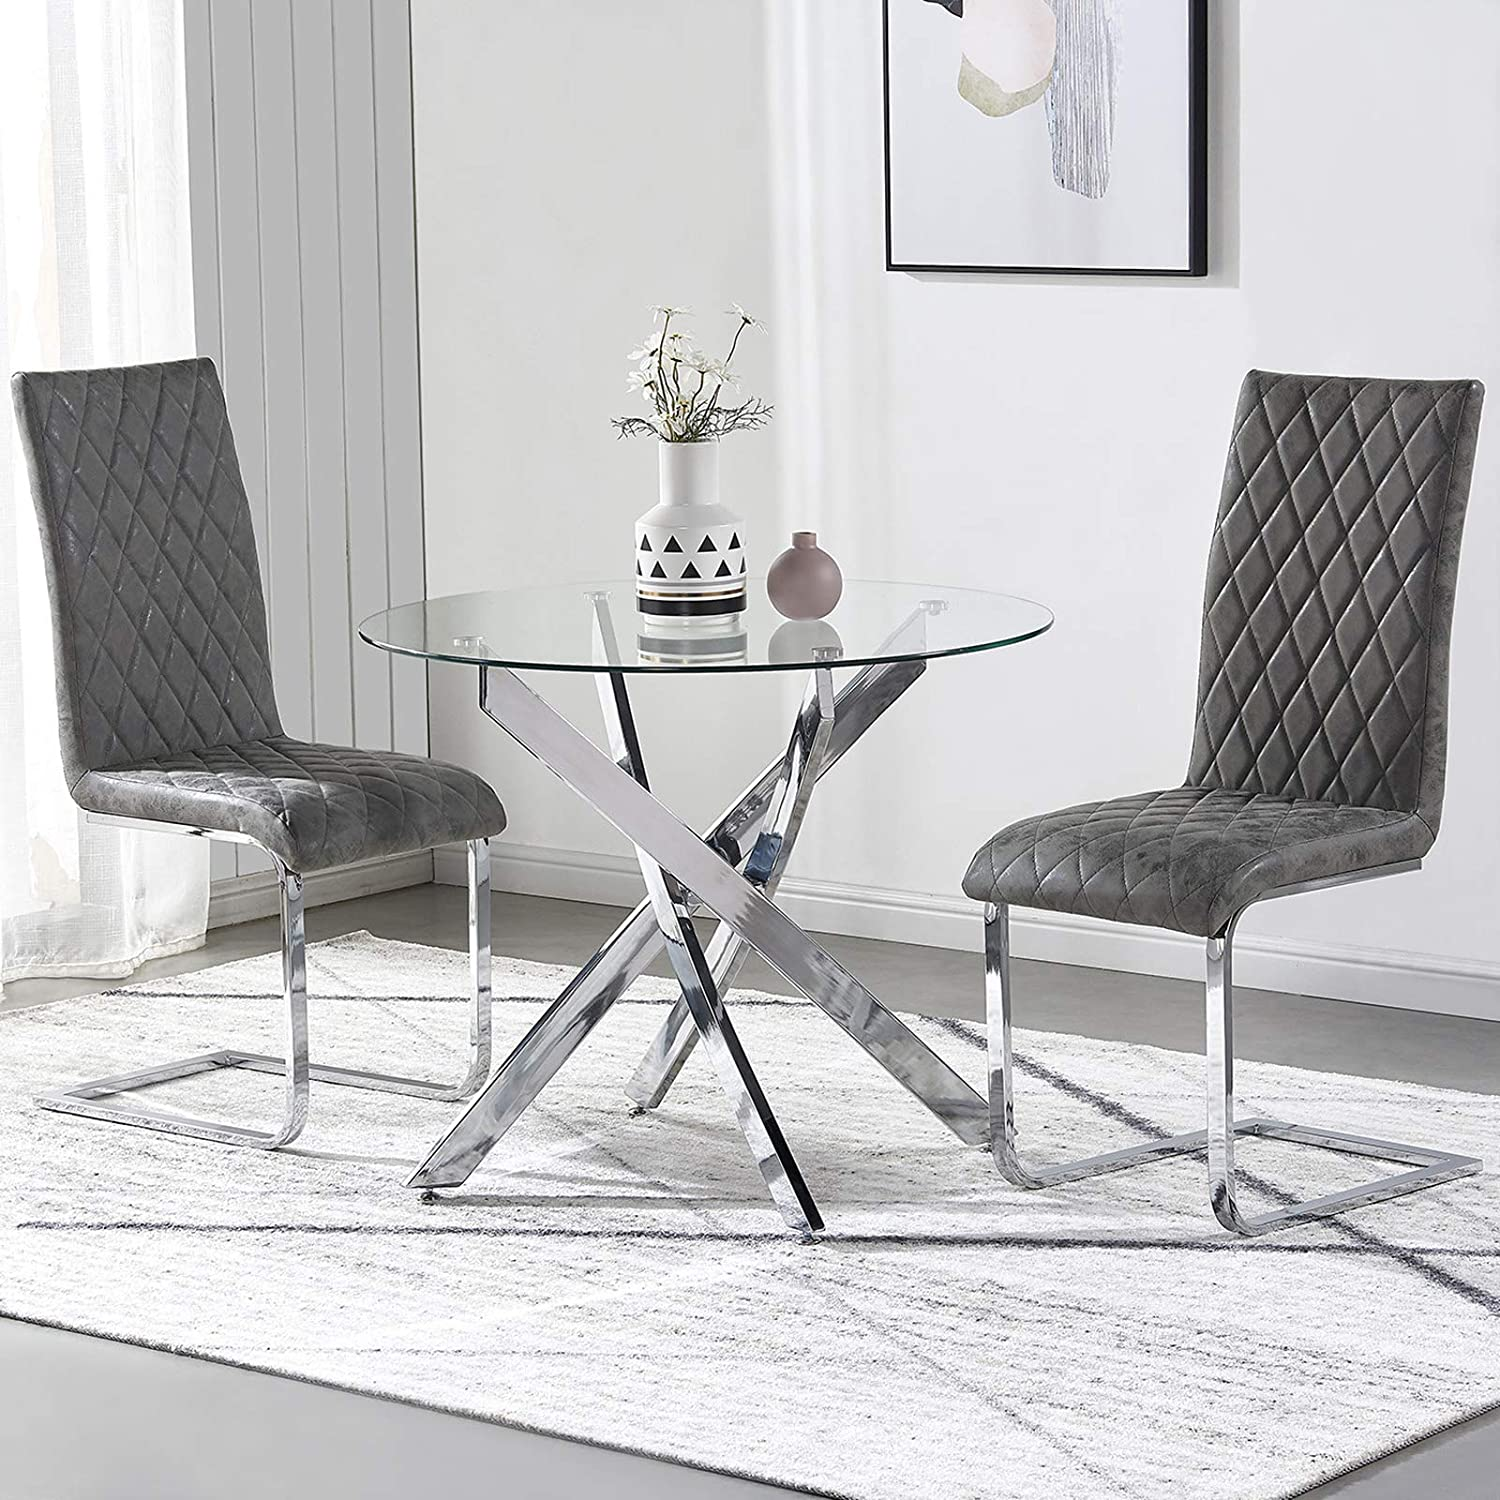 GIZZA Glass Dining Table and Chairs Set 2 Round Tempered Clear Glass Table and 2 Grey Chairs,Distressed Faux Leather Padded Seat with Solid Chrome Base,for Living Room Kitchen Dining Room